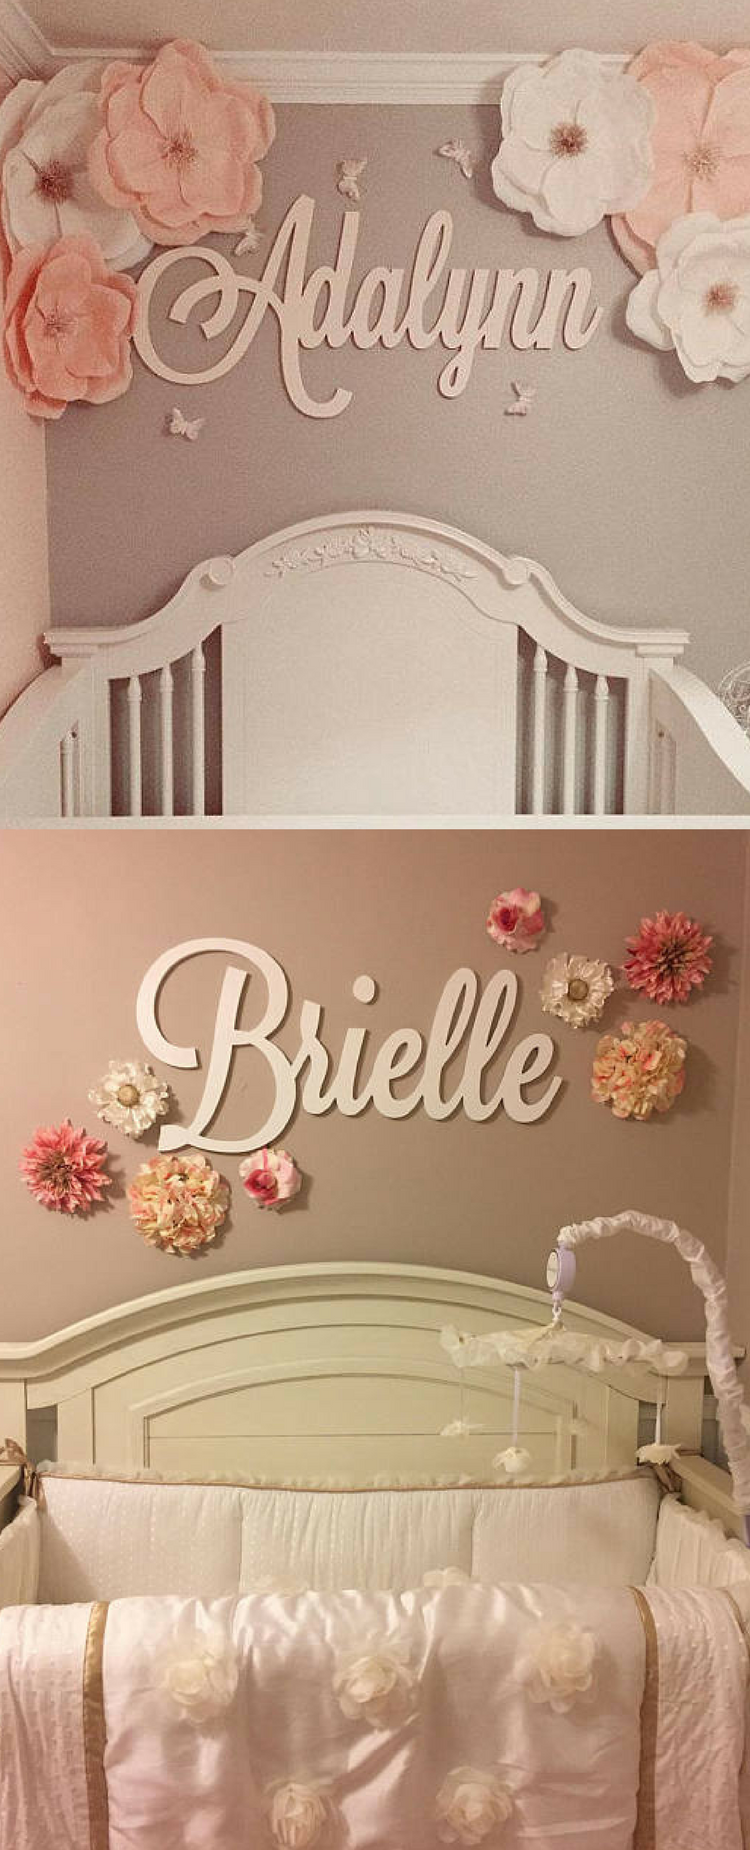 This Is A Great Idea For Name Décor My Baby S Nursery Maybe I Could Diy Wood Sign But One 14 Ad